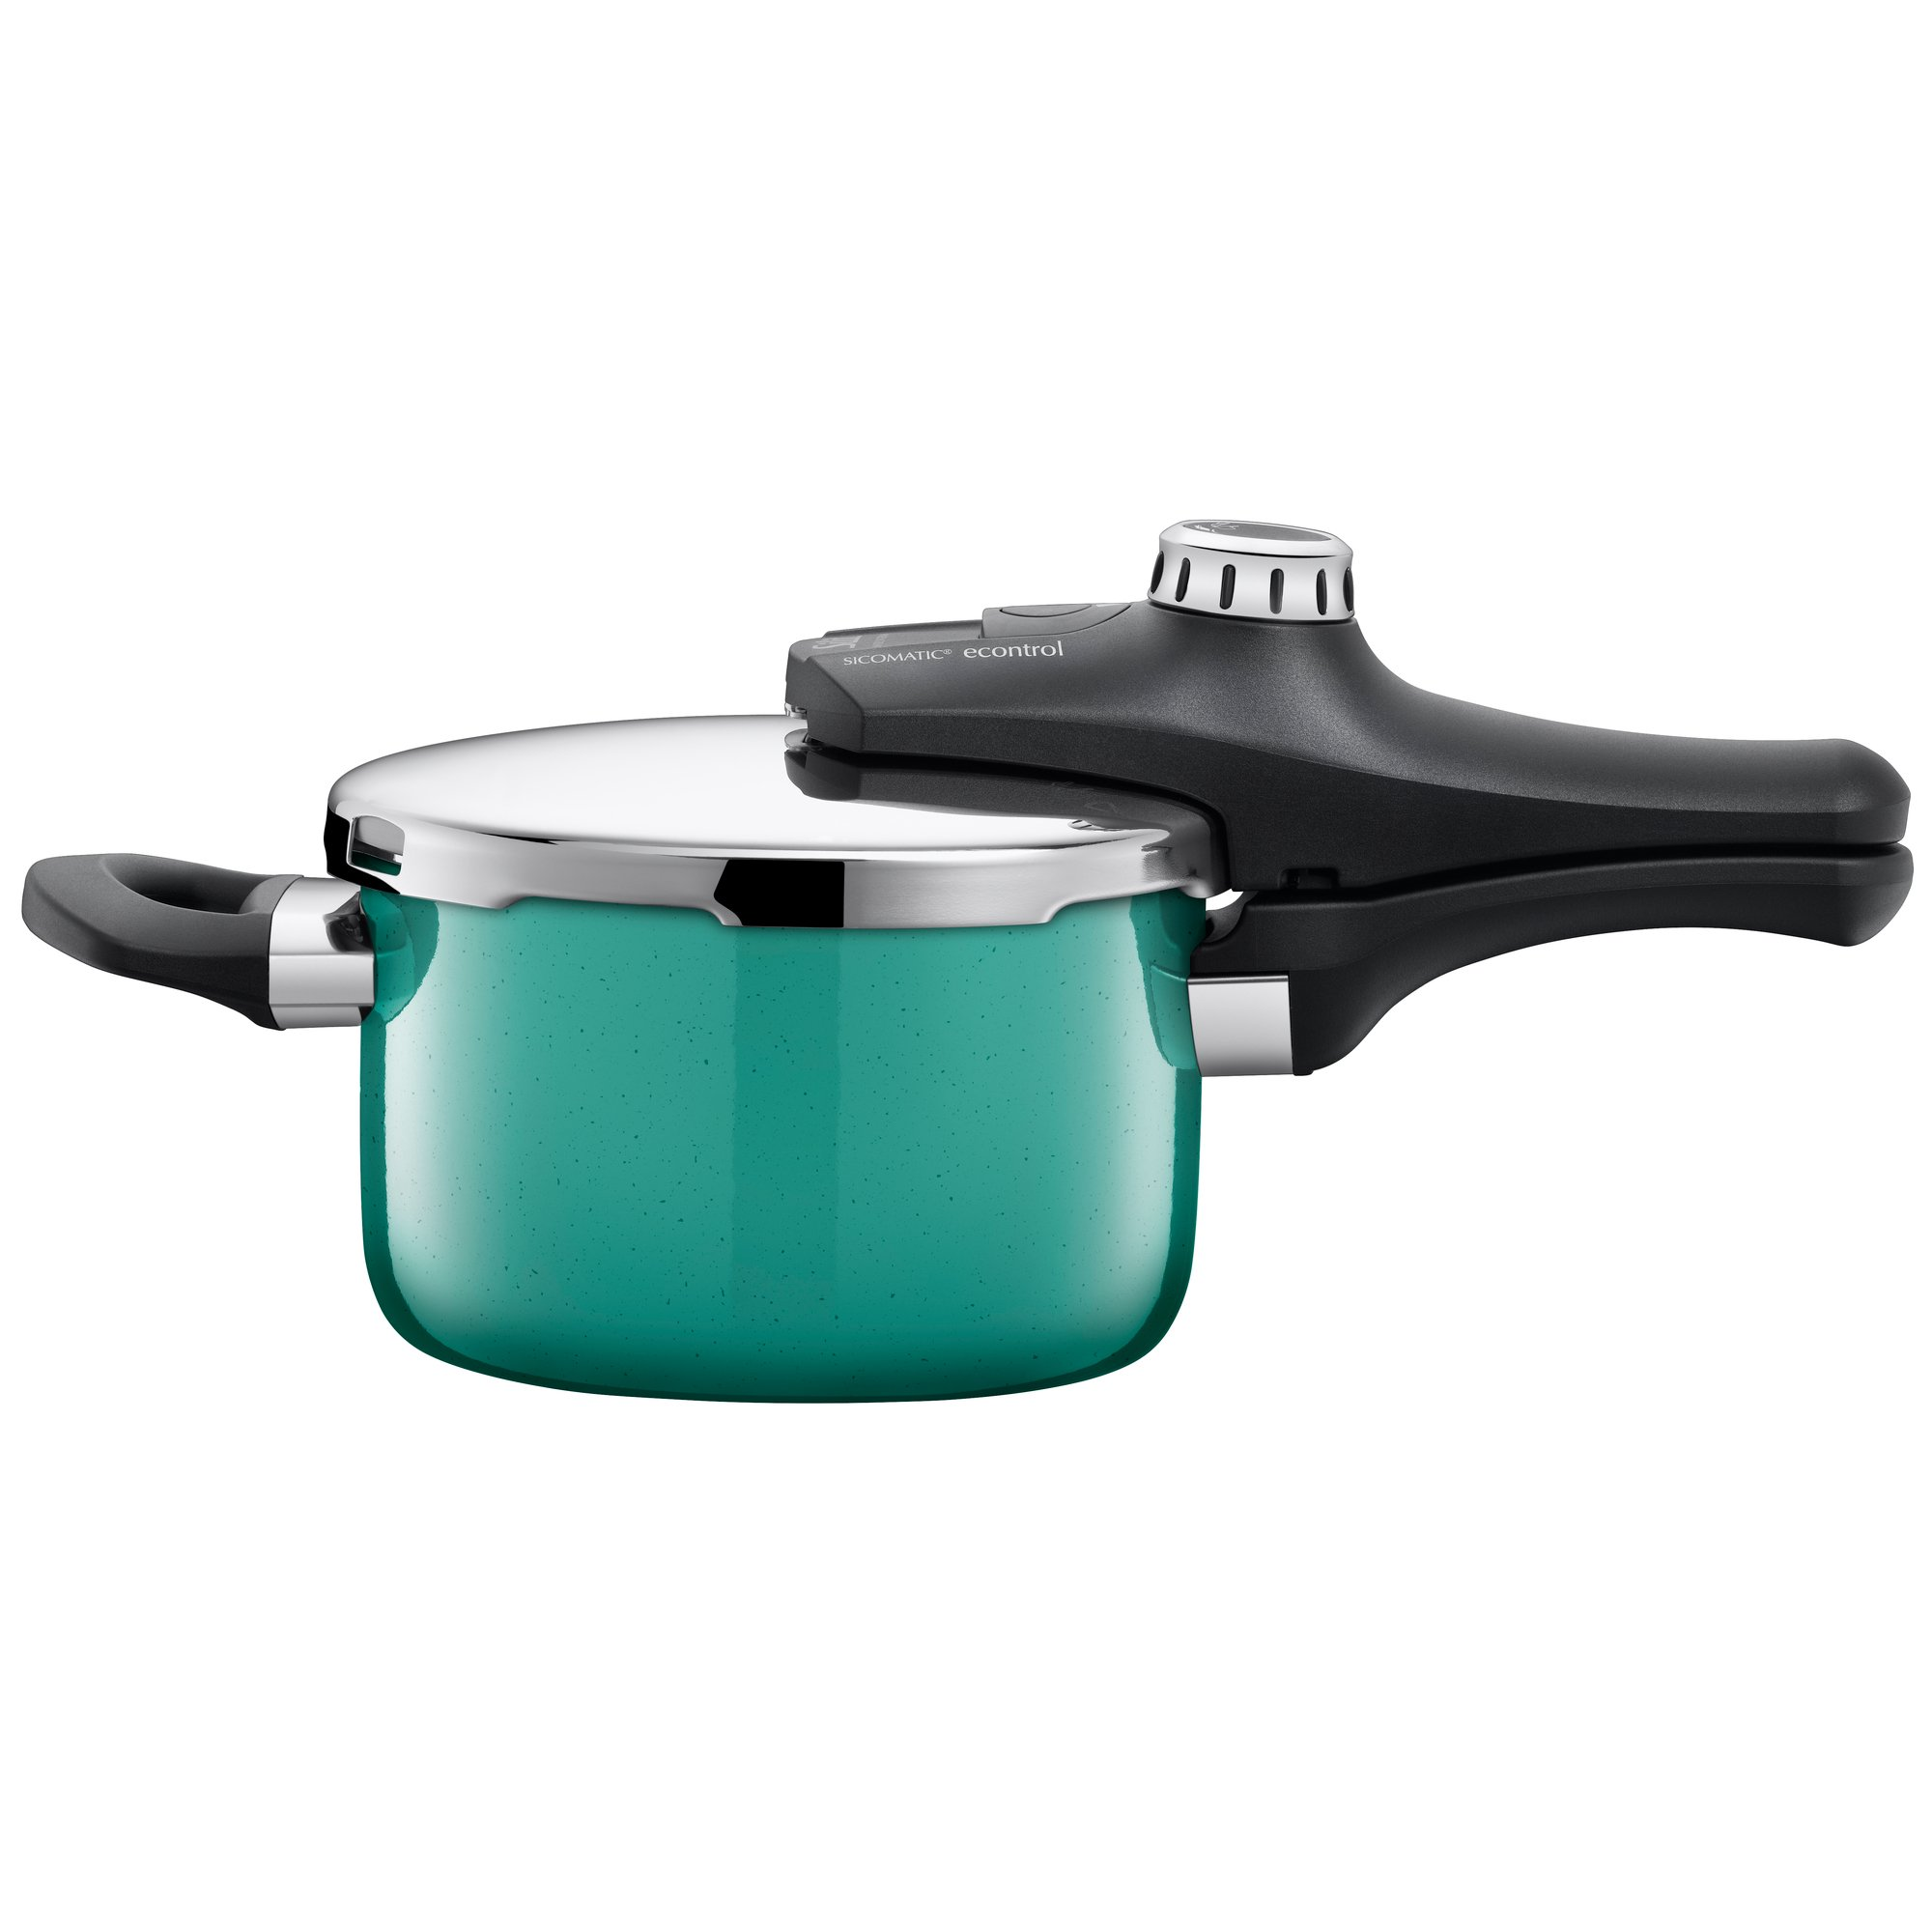 Silit Sicomatic econtrol Pressure Cooker Without Insert 2.5 L Diameter 18 cm Green Nature Green Made in Germany Markings Silargan Functional Ceramic Suitable for Induction Cookers NR 2120299356